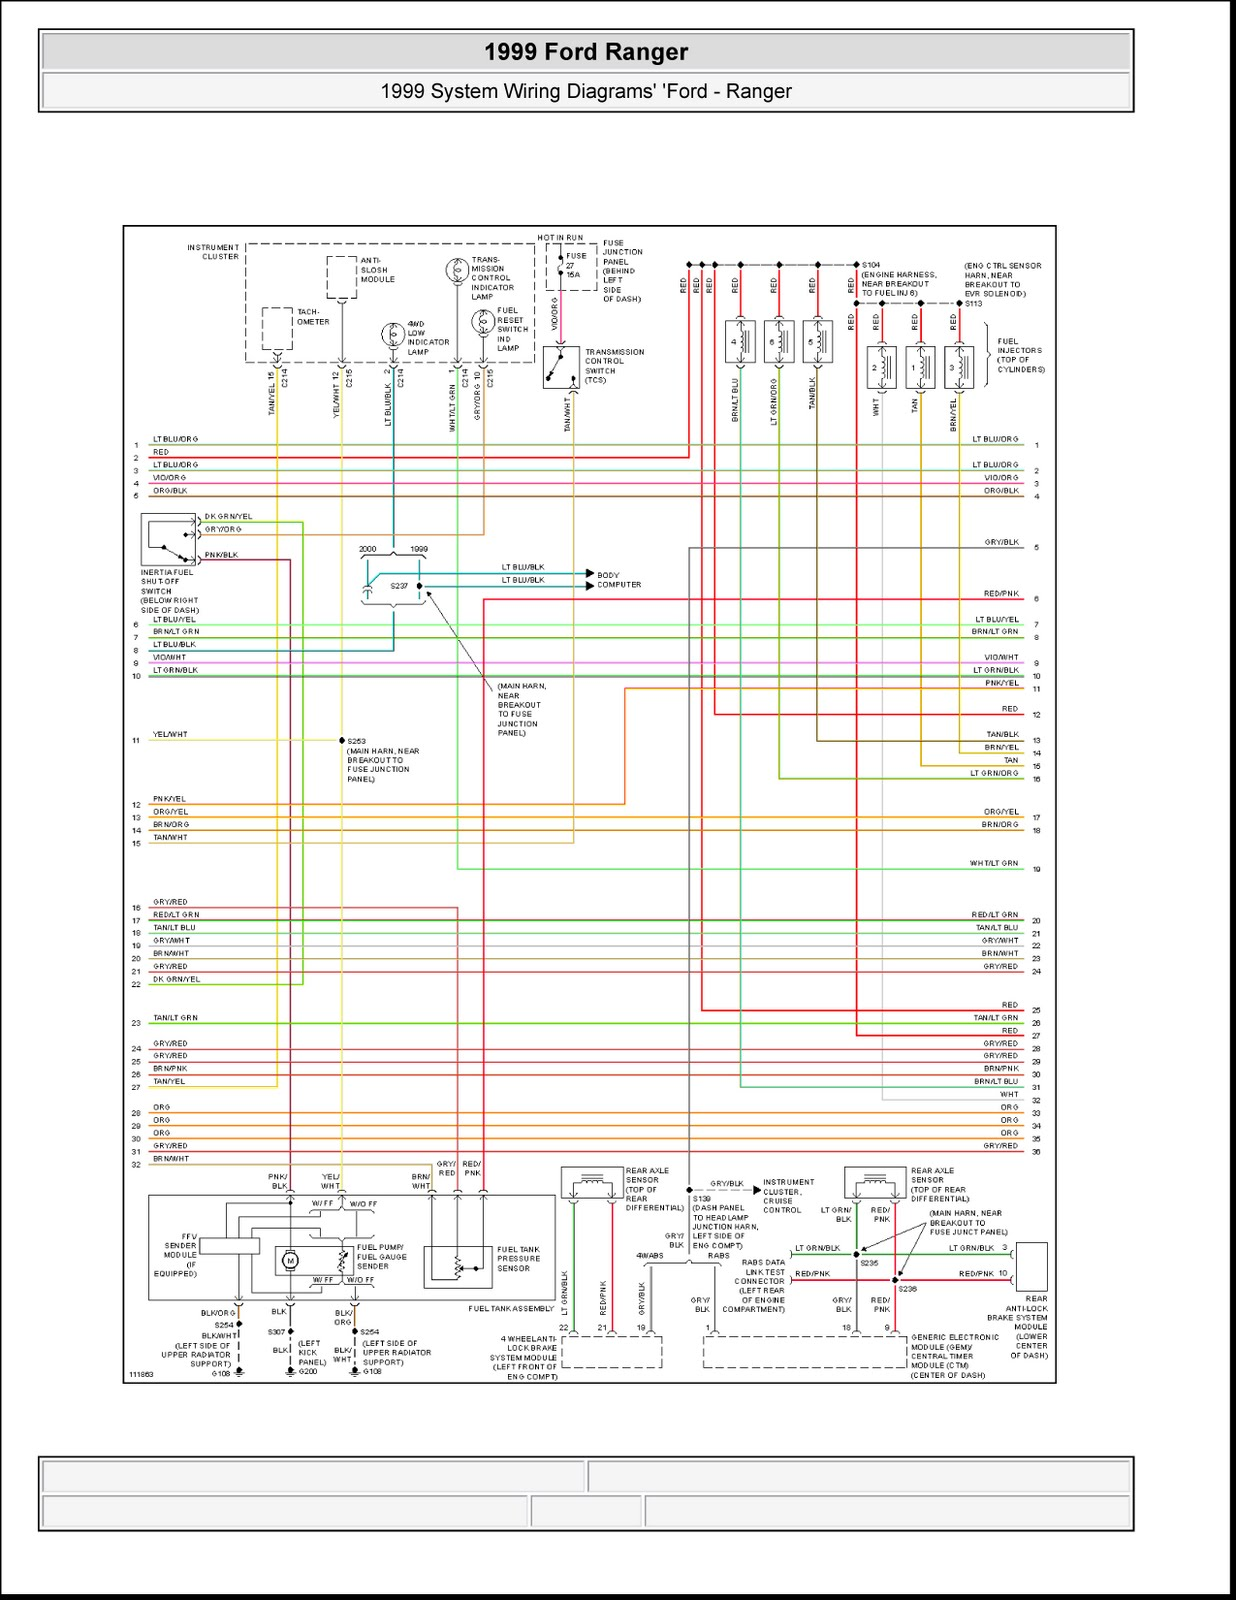 1999    Ford       Ranger    System    Wiring       Diagrams      4 Images